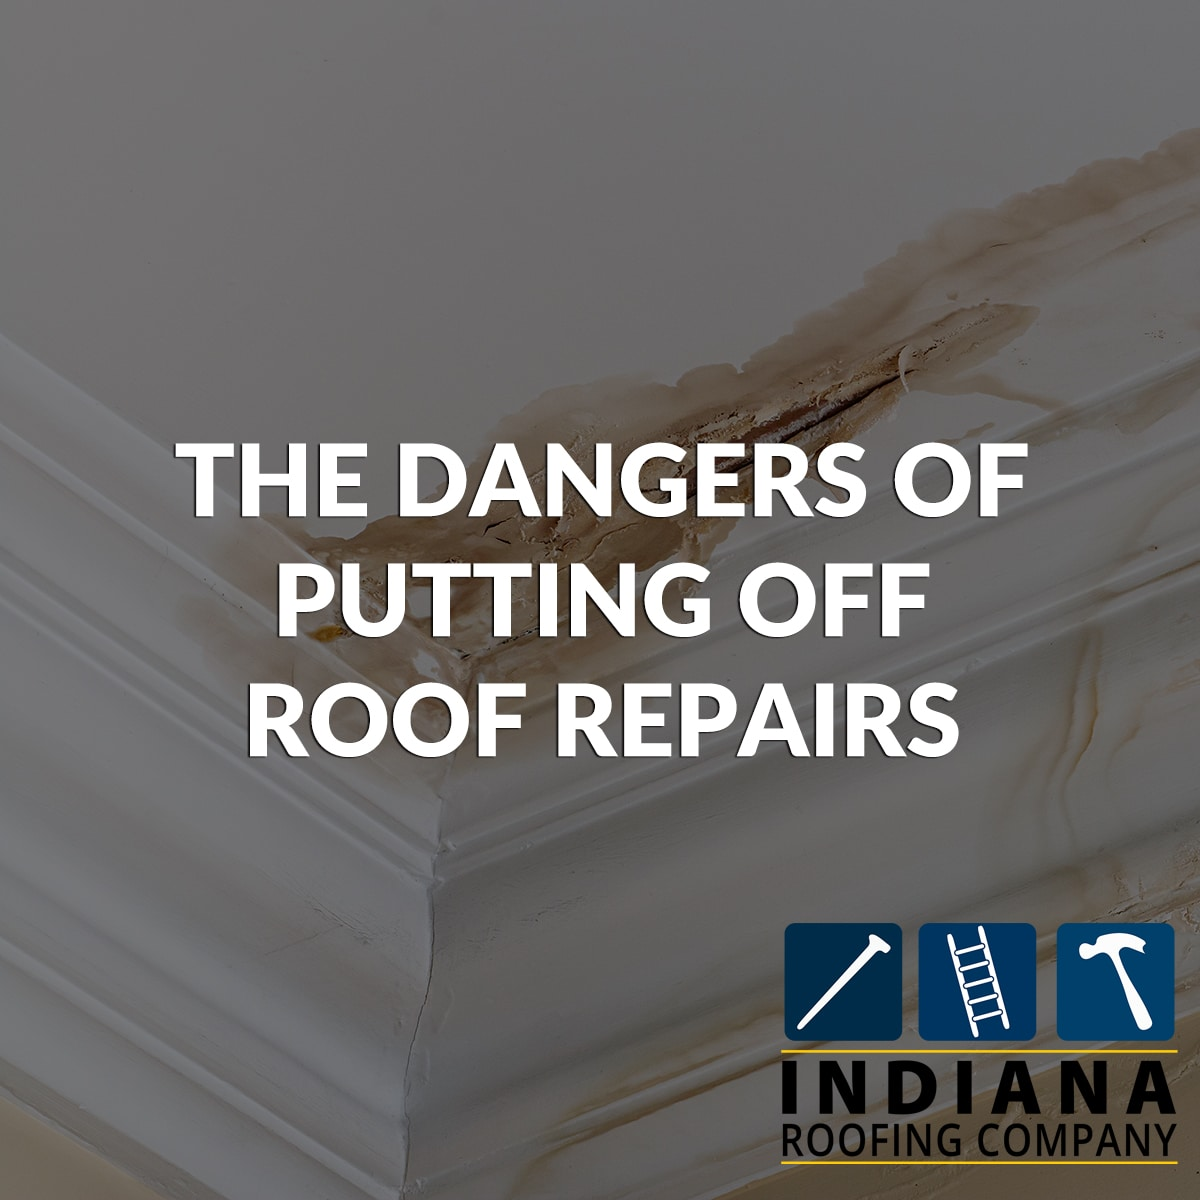 The Dangers of Putting Off Roof Repairs